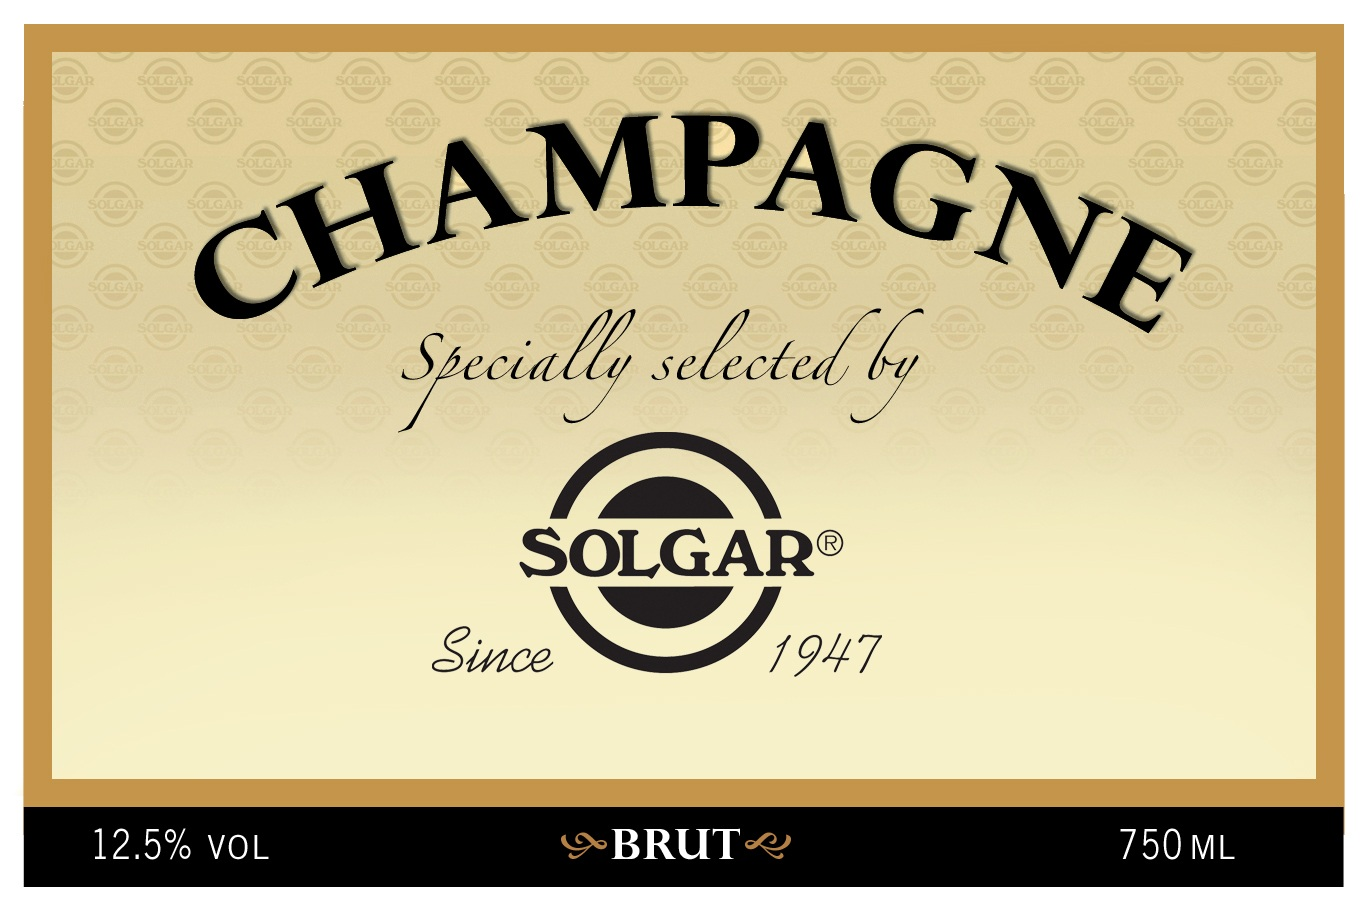 Solgar Branded Champagne Label